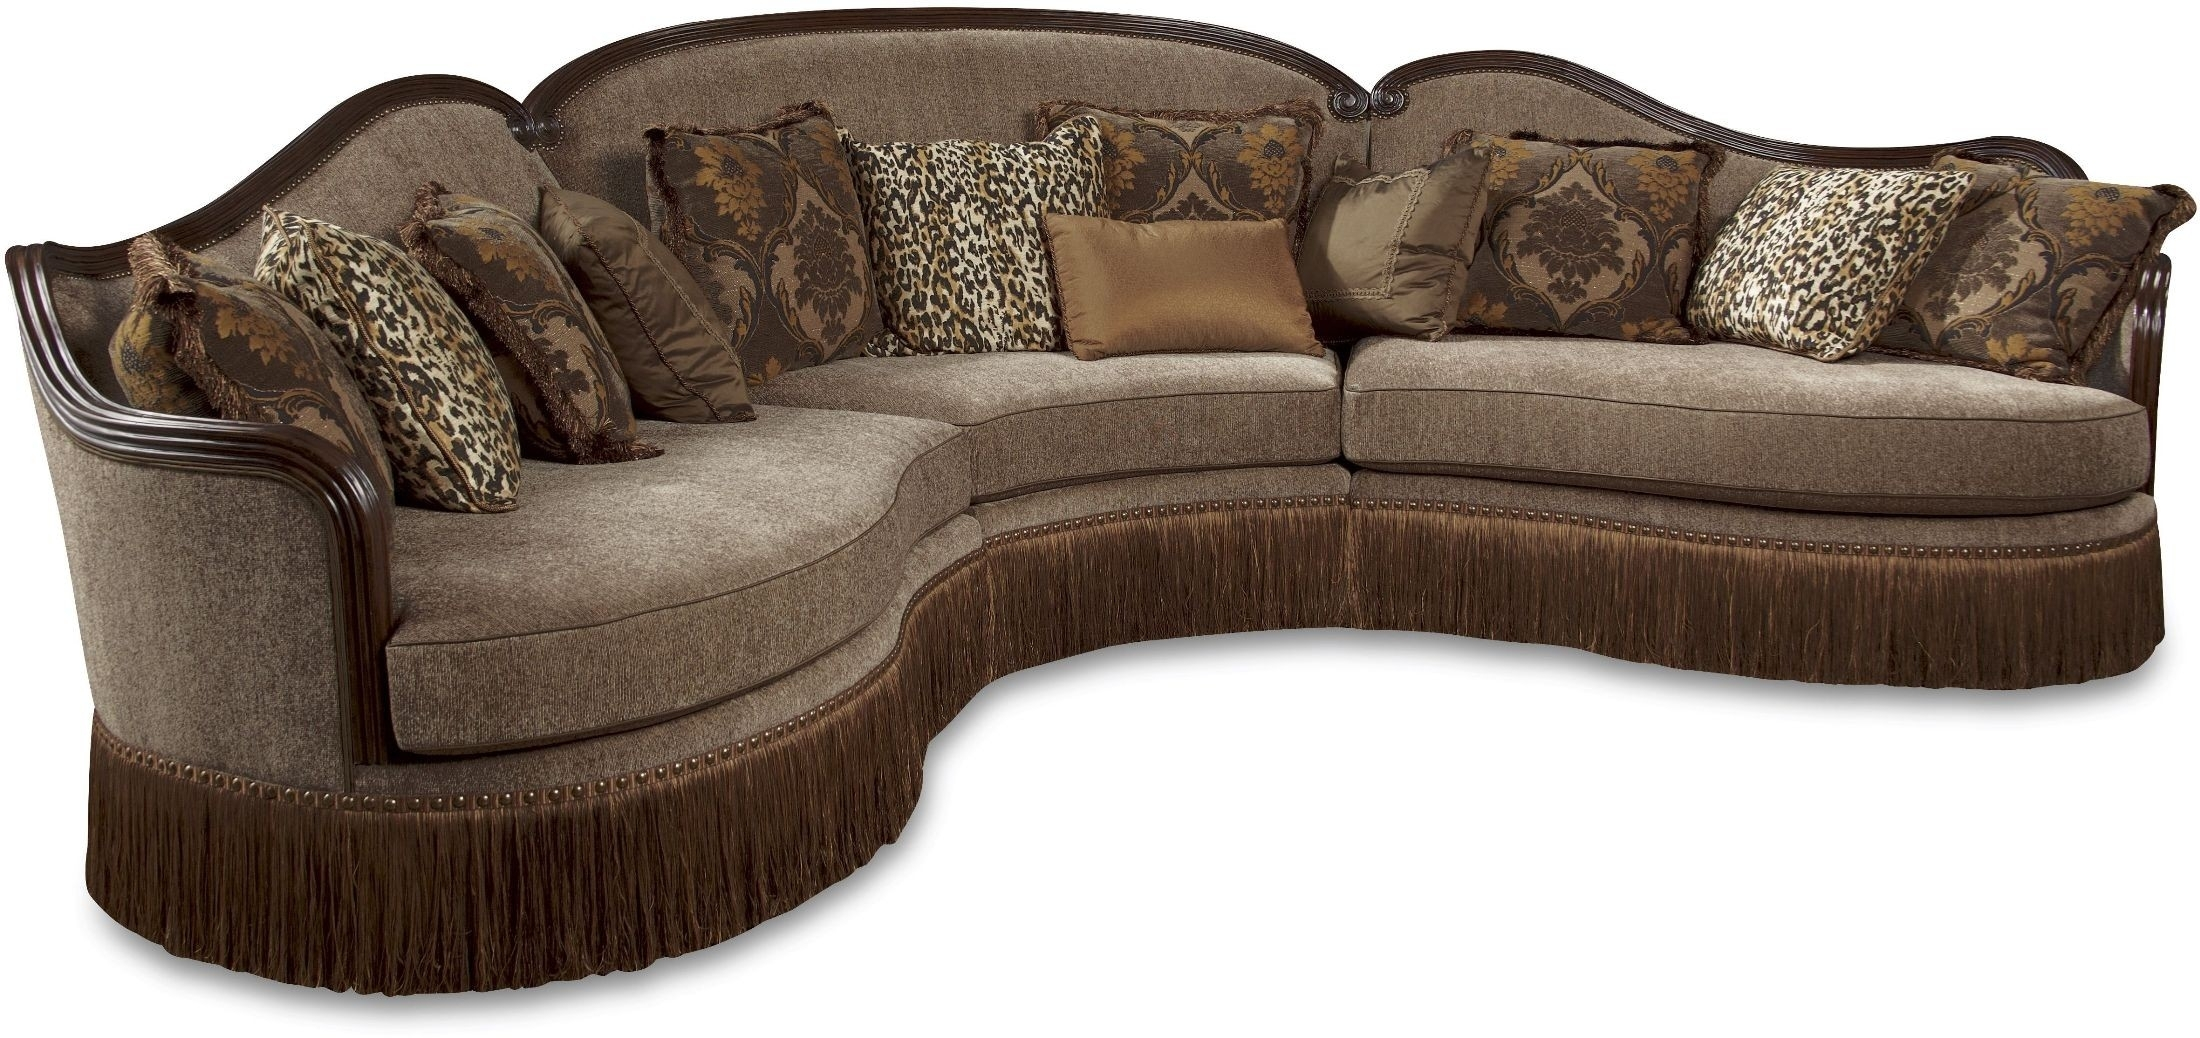 Giovanna Sable 3 Piece Sectional From Art | Coleman Furniture Inside Harper Down 3 Piece Sectionals (Image 9 of 25)